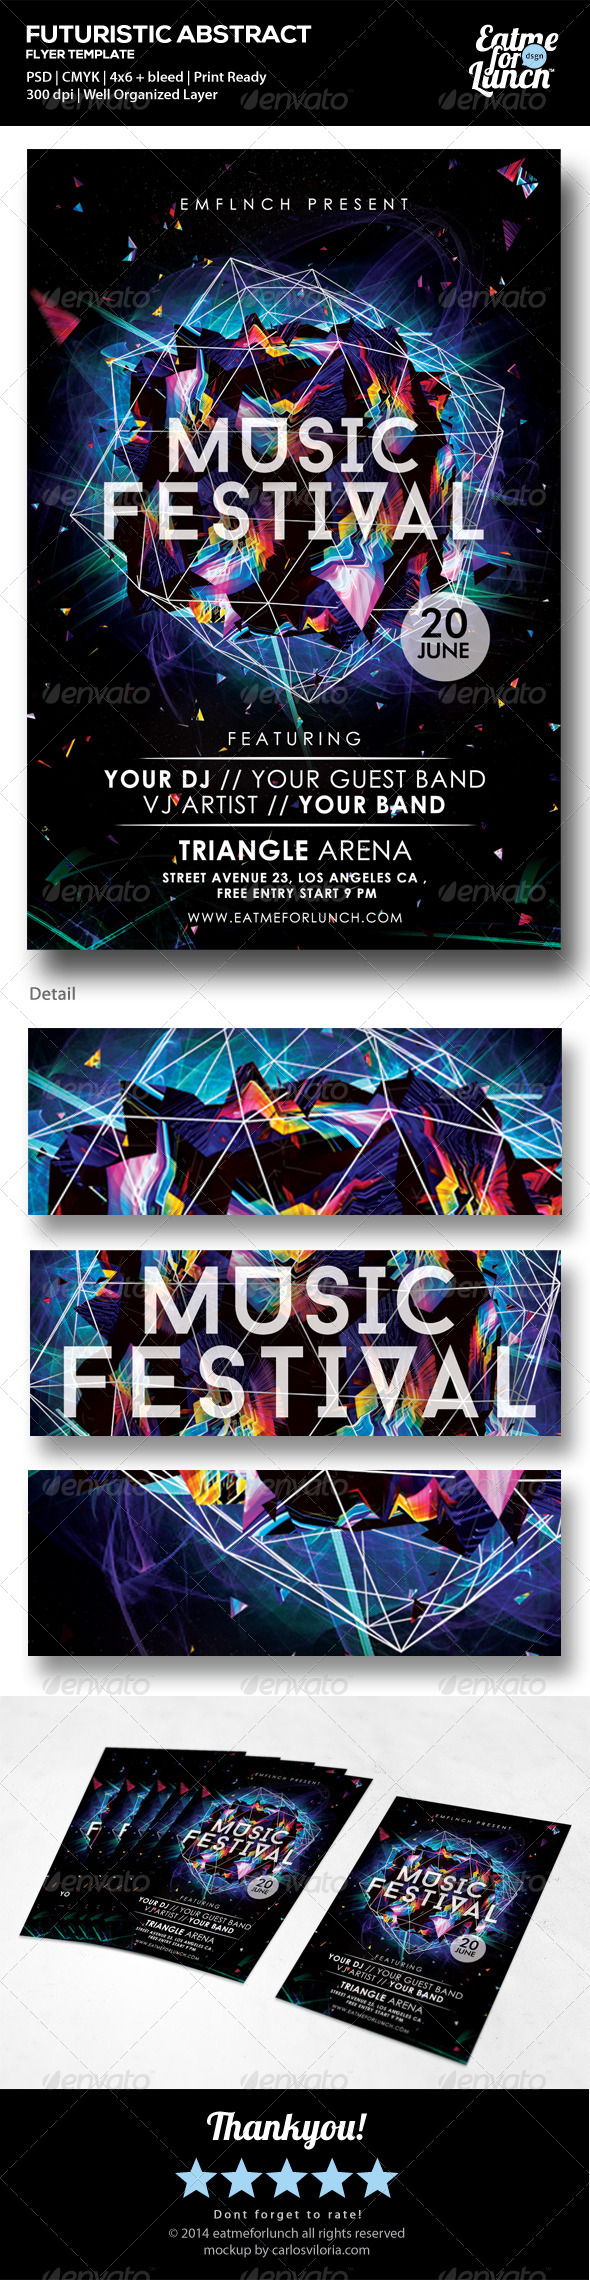 Futuristic Music/Gigs/Festival Flyer Templates  - Clubs & Parties Events